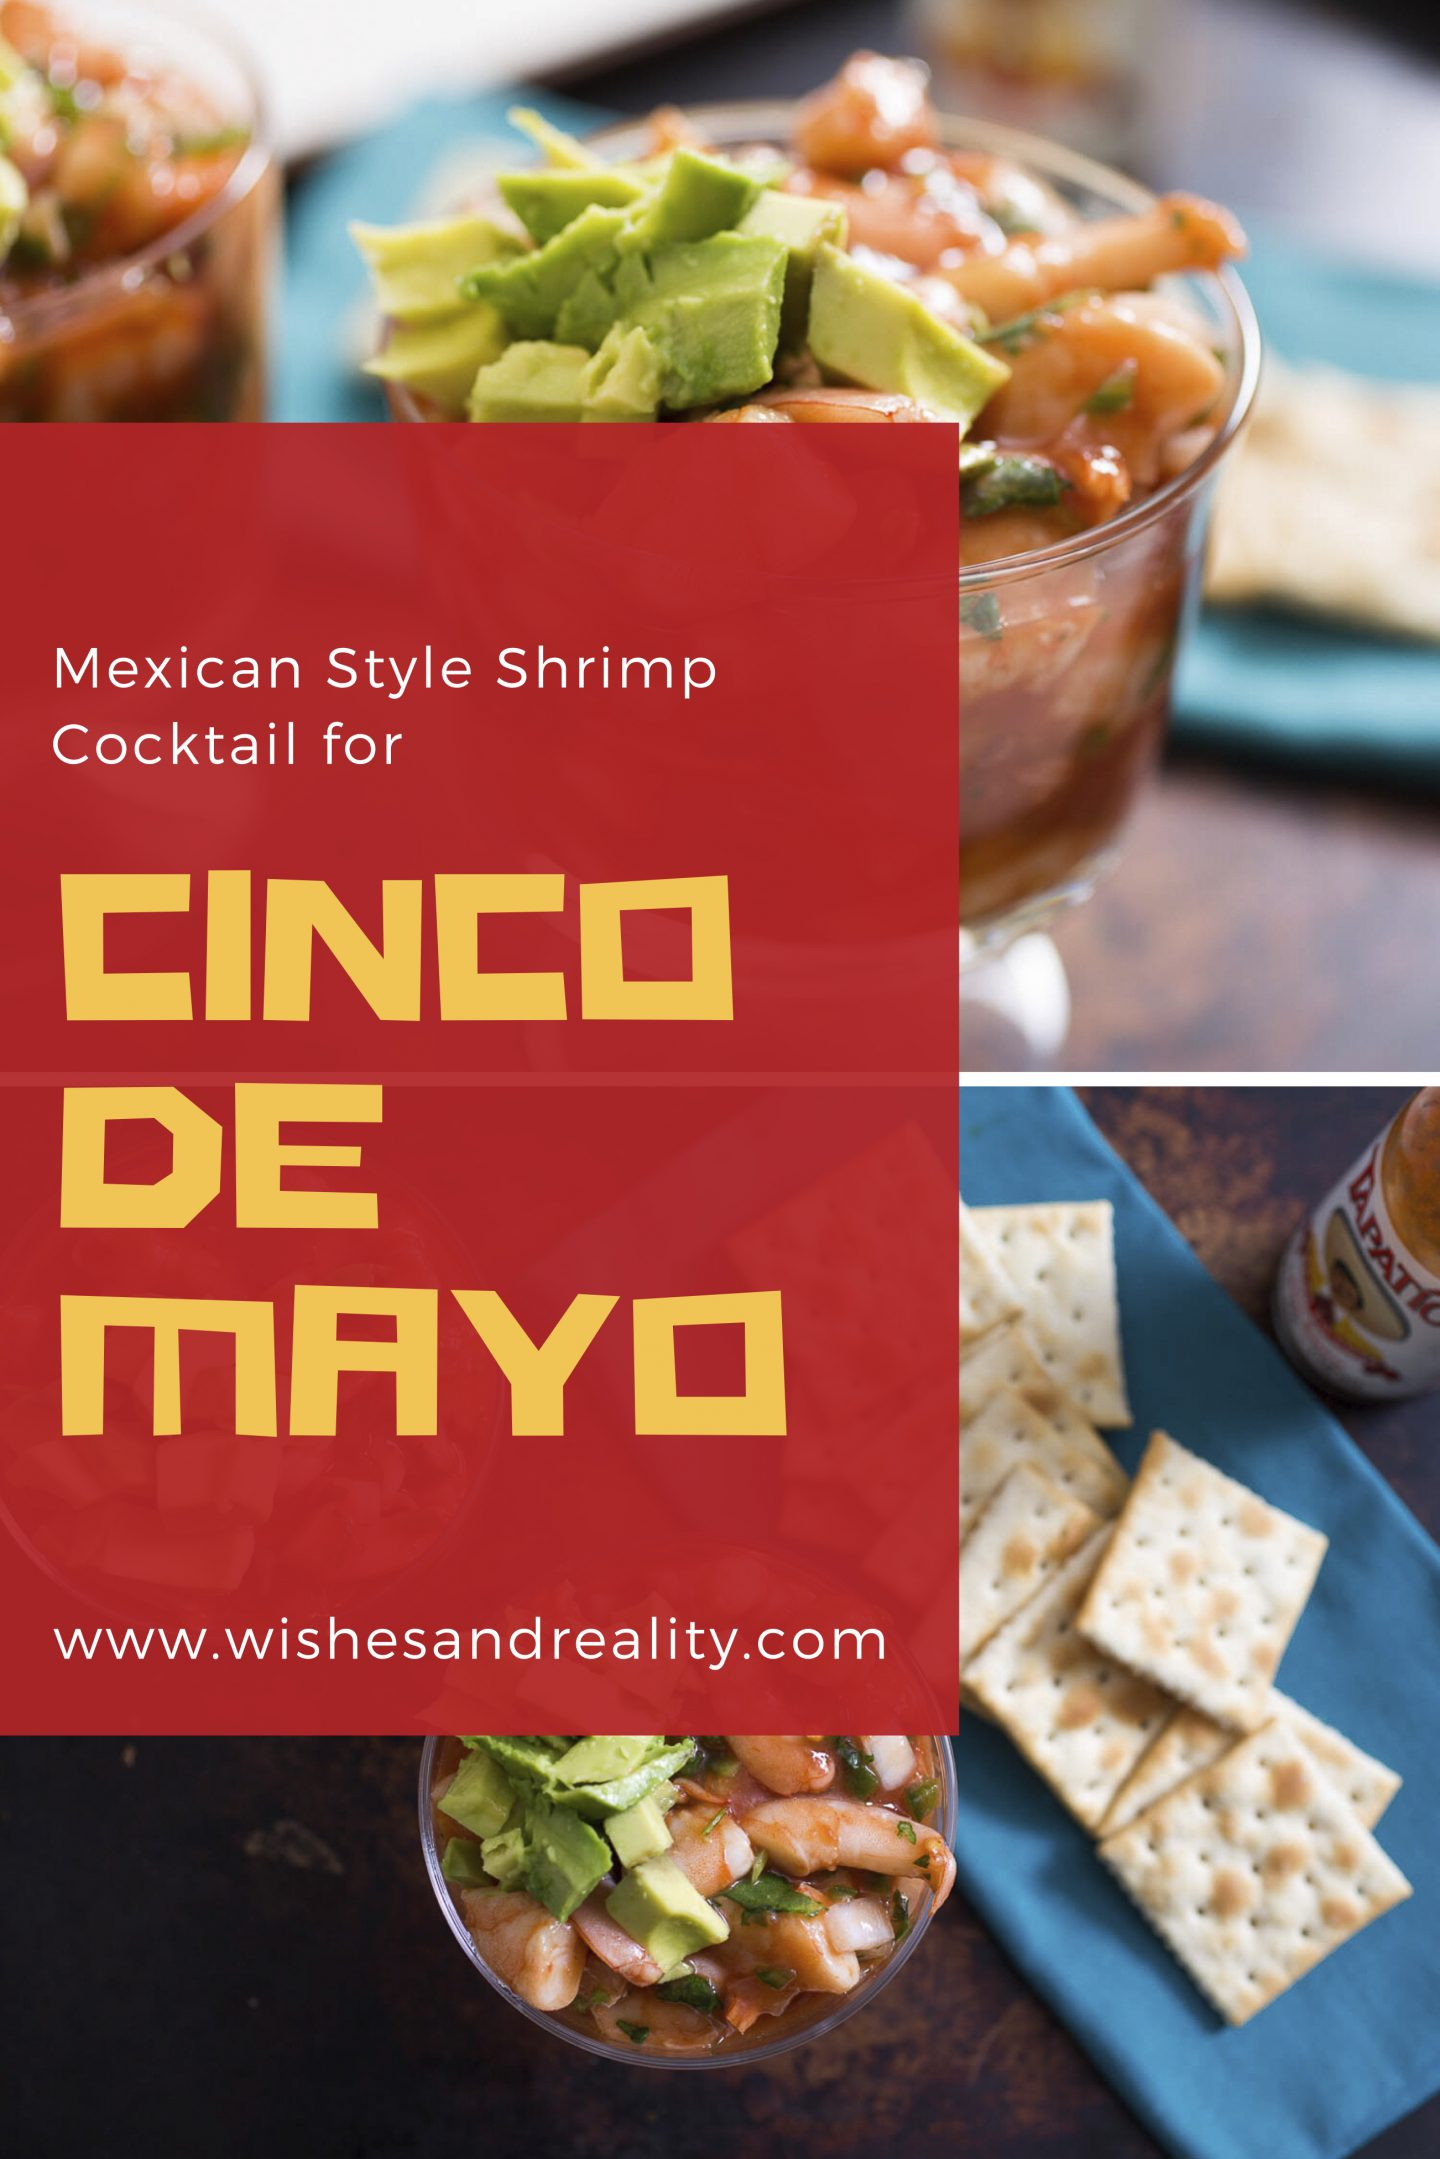 Mexican Style Shrimp Cocktail for Cinco de Mayo